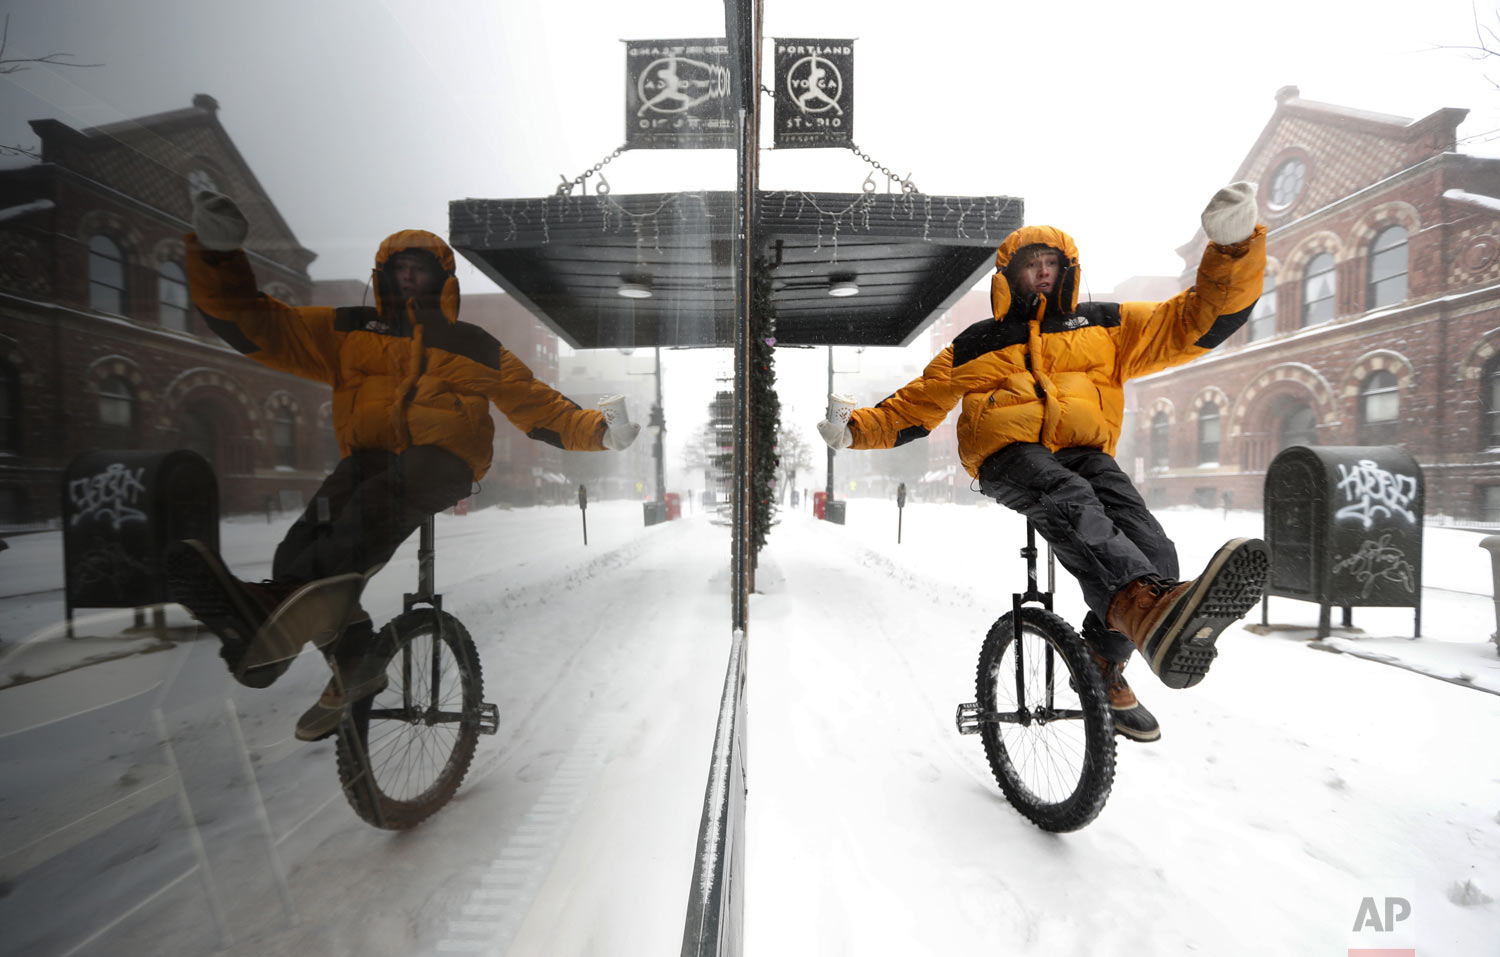 Caleb Seely rides a unicycle on a snow-covered sidewalk as he heads home after helping shovel out his brother's driveway during a winter storm, Sunday, Jan. 20, 2019, in Portland, Maine. The extra knobby tire on Seely's ride provided traction on a day when snow, sleet and freezing rain kept most motorists indoors. (AP Photo/Robert F. Bukaty)